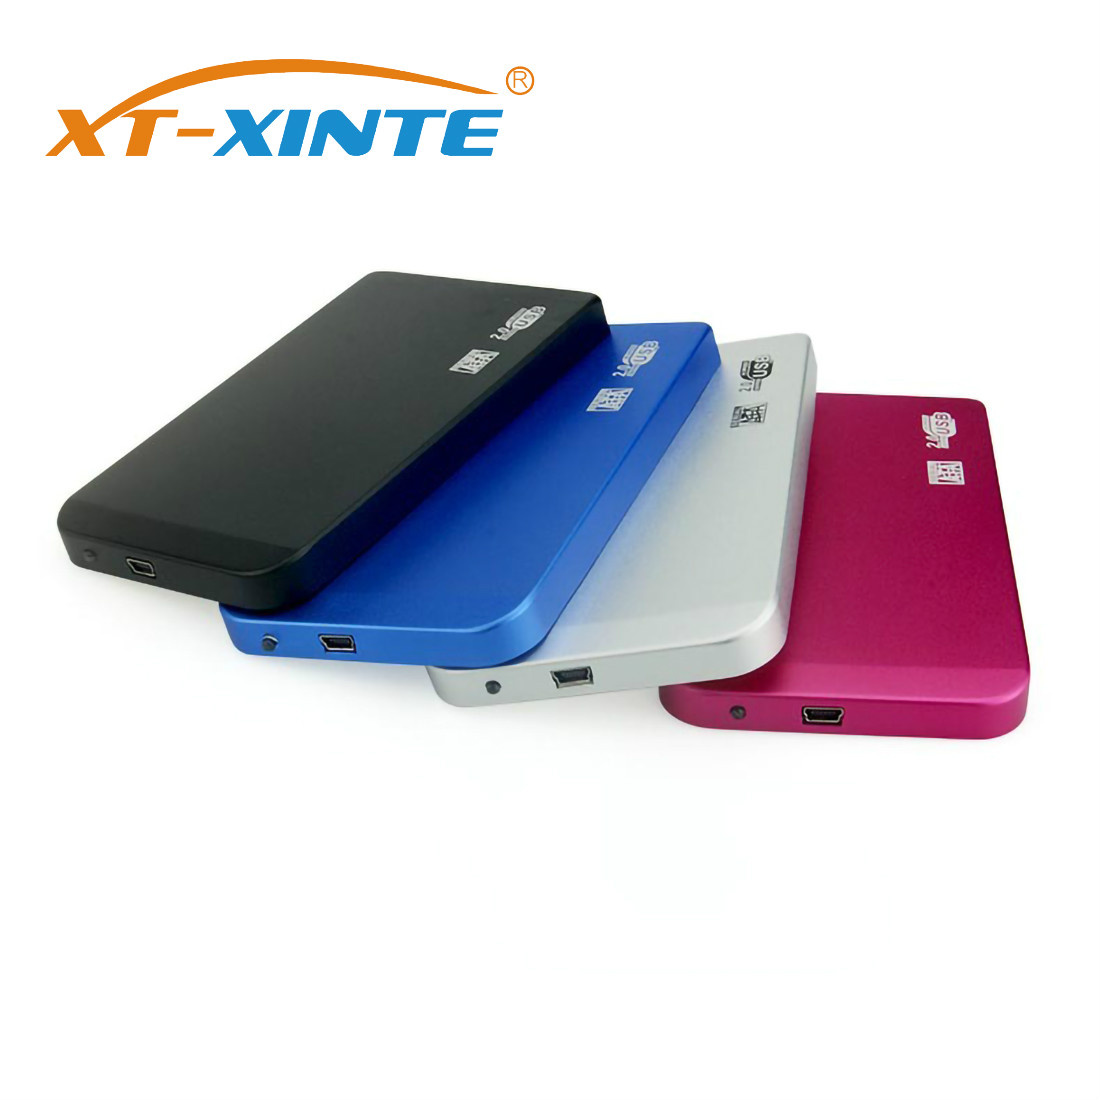 XT-XINTE Aluminum Alloy <font><b>SATA</b></font> to Mini USB 2.0 <font><b>HDD</b></font> Case <font><b>2.5</b></font> <font><b>inch</b></font> <font><b>Hard</b></font> Disk <font><b>Drive</b></font> Enclosure Portable External SSD <font><b>Box</b></font> Support 2TB image